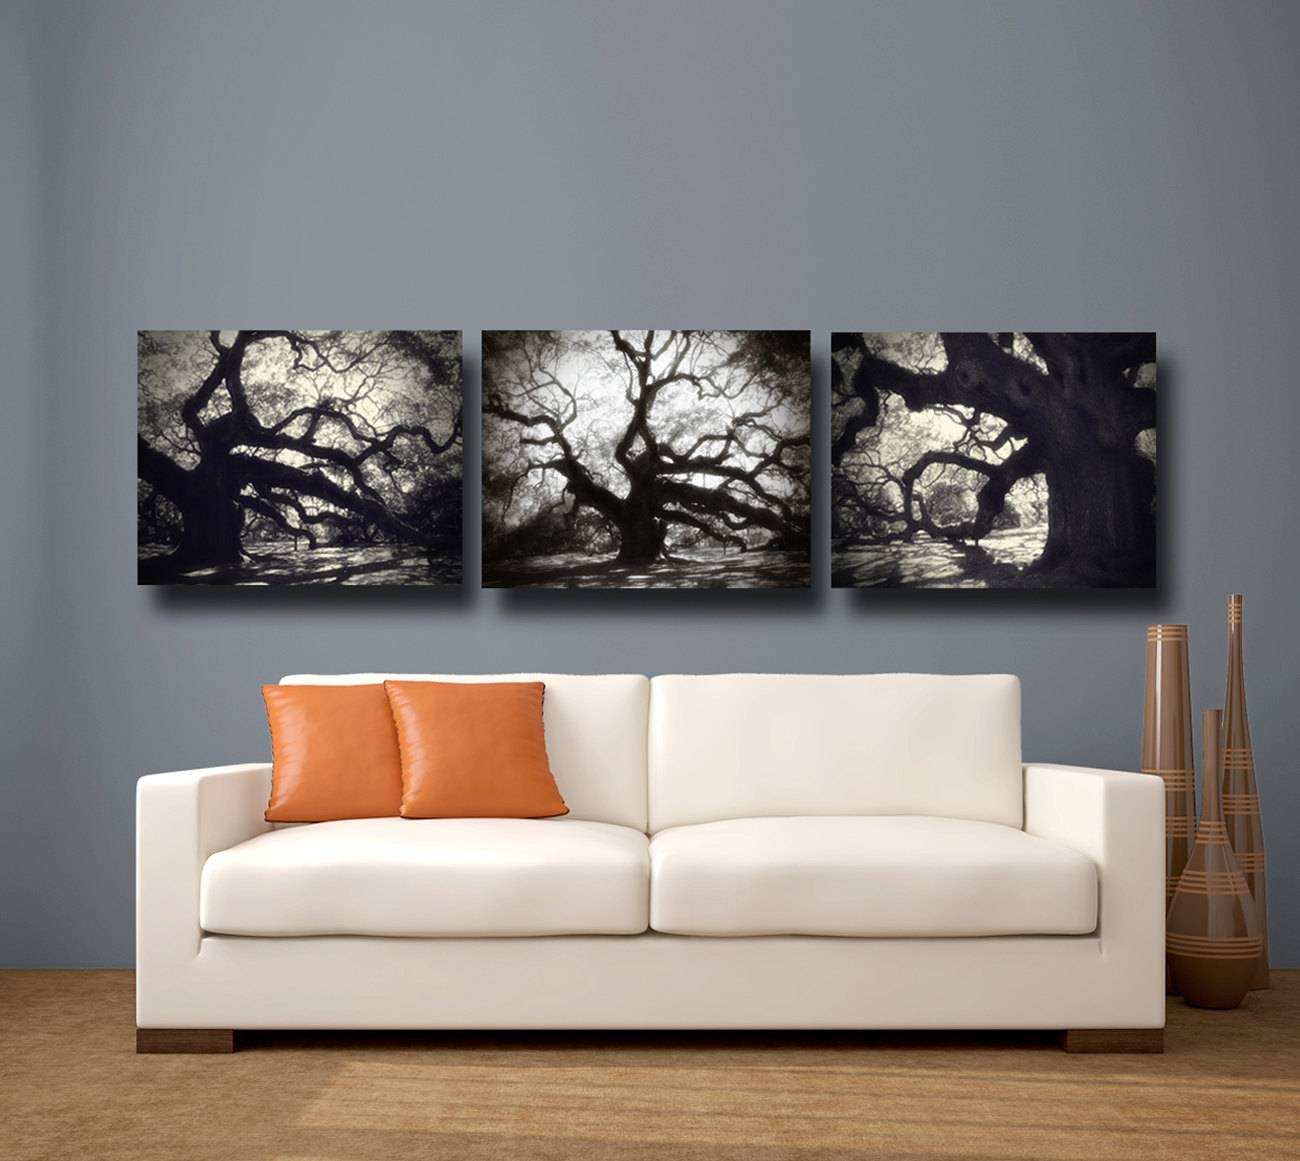 Black And White Wall Art Captivating Property Architecture A Black For Most Recent Large Black And White Wall Art (View 7 of 20)